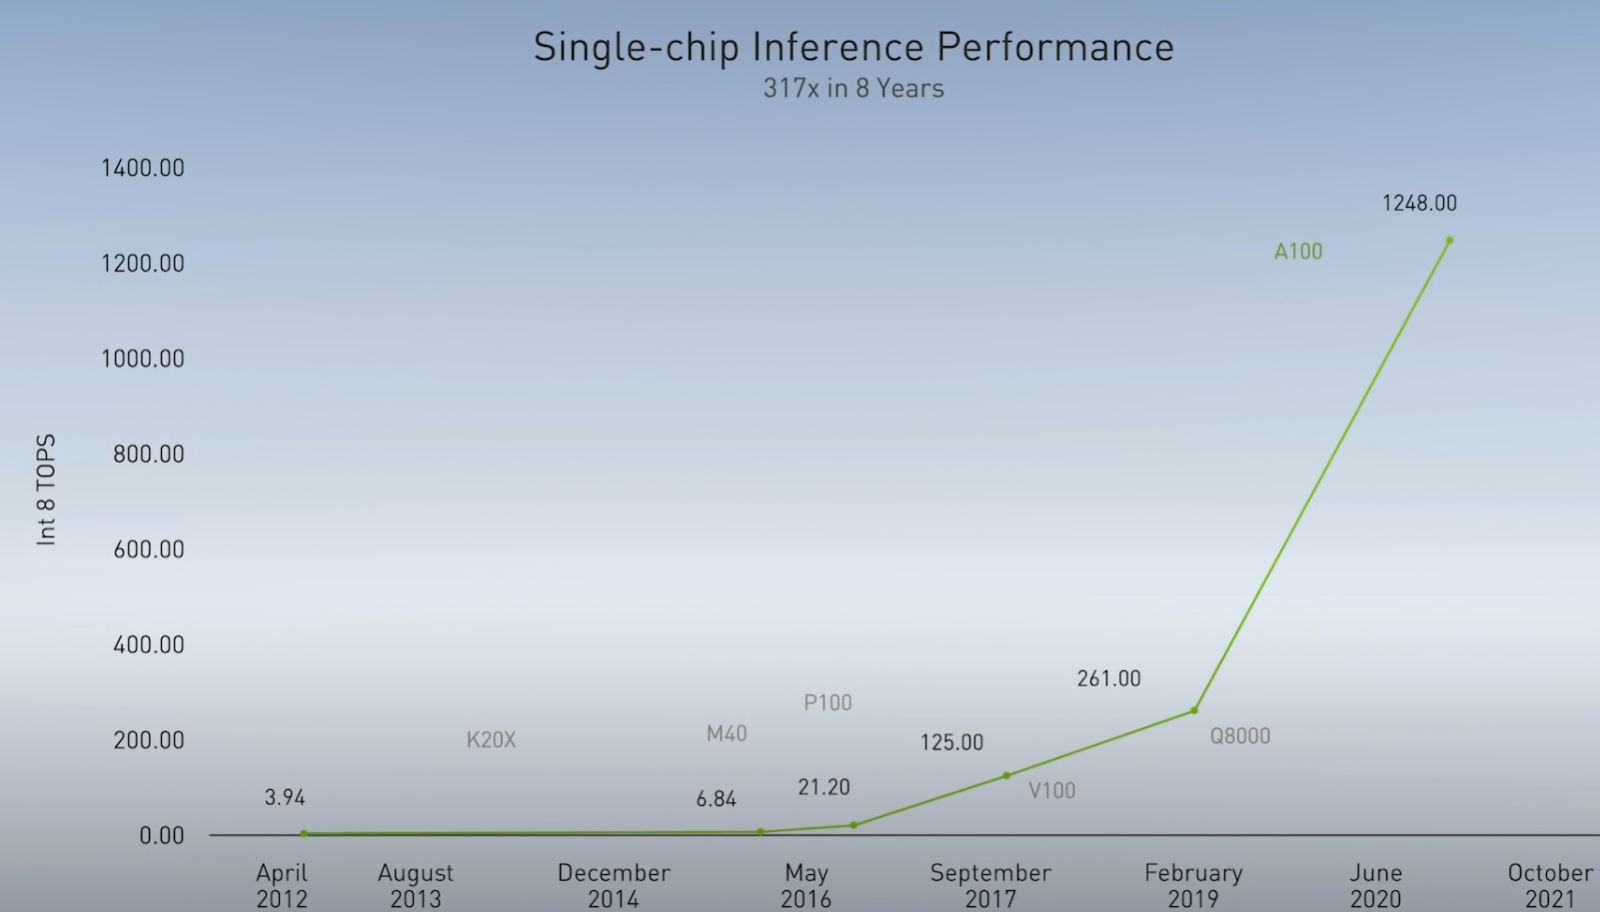 NVIDIA GTC China 2020 Bill Dally Inference Performance Over Time